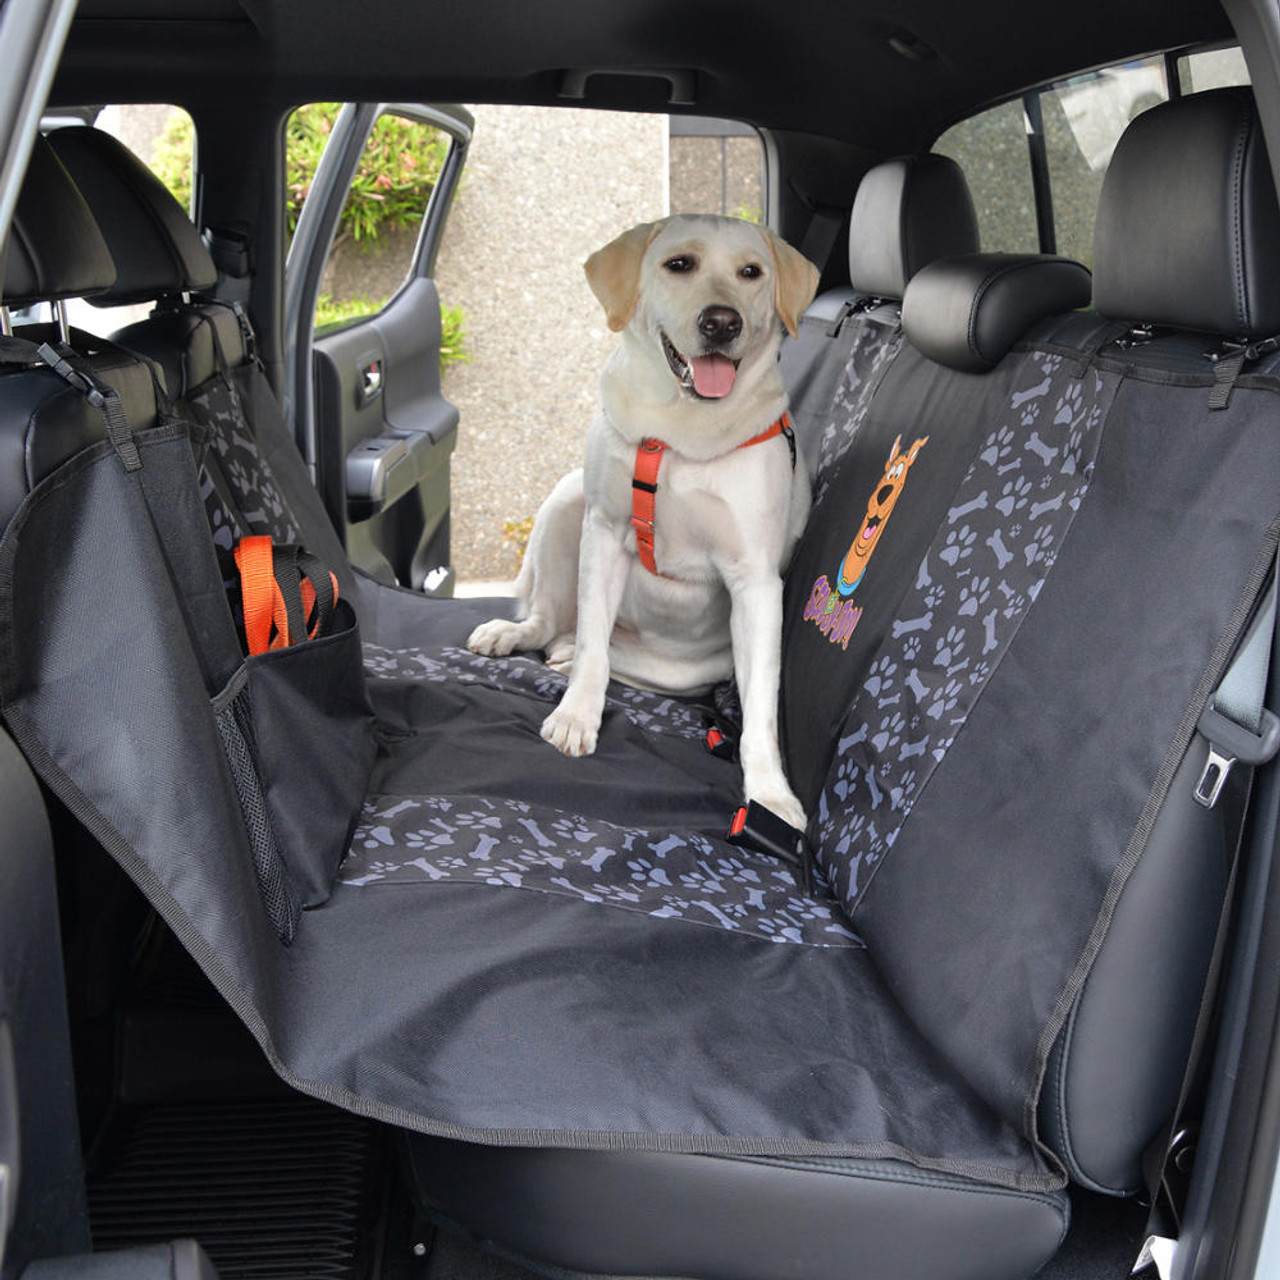 Dog Seat Covers For Trucks >> Scooby Doo Pet Seat Cover For Car Suv Truck 100 Waterproof Protection Double Padded Extendable With Split Zipper Dog Cat Friendly Bench